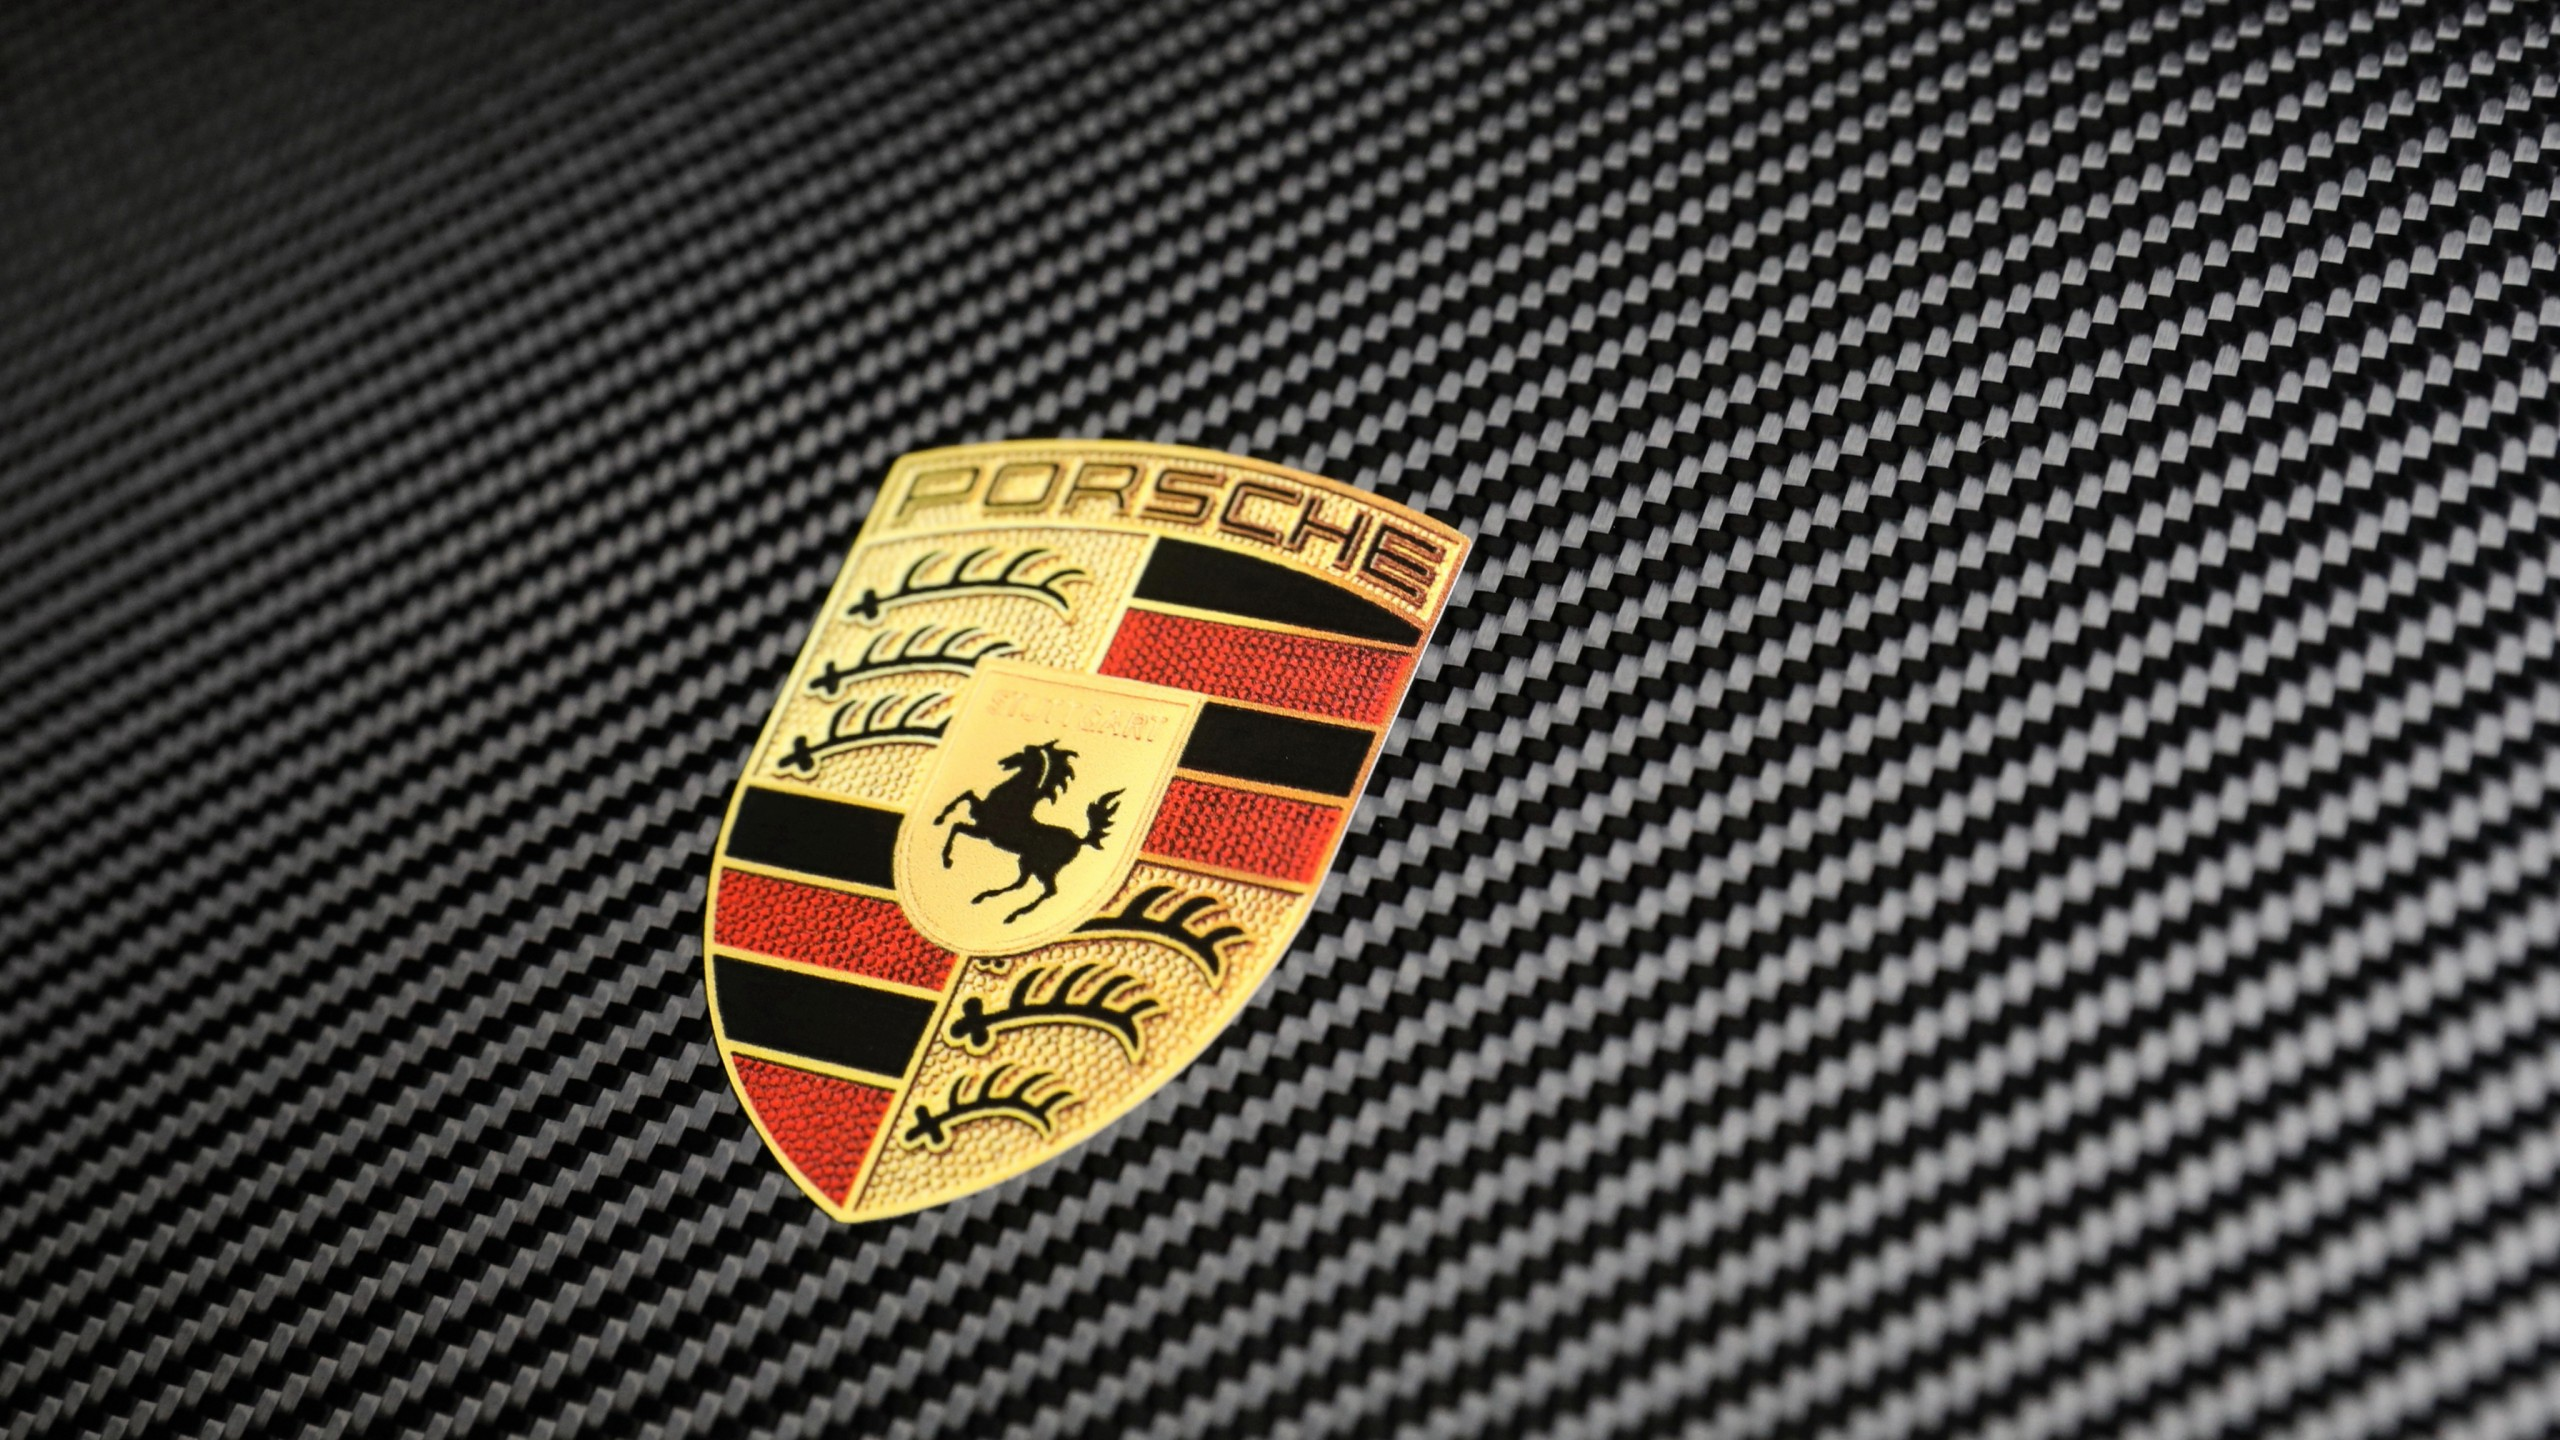 2016 Dodge Magnum >> 2018 Porsche 911 GT2 RS Logo Wallpaper | HD Car Wallpapers ...